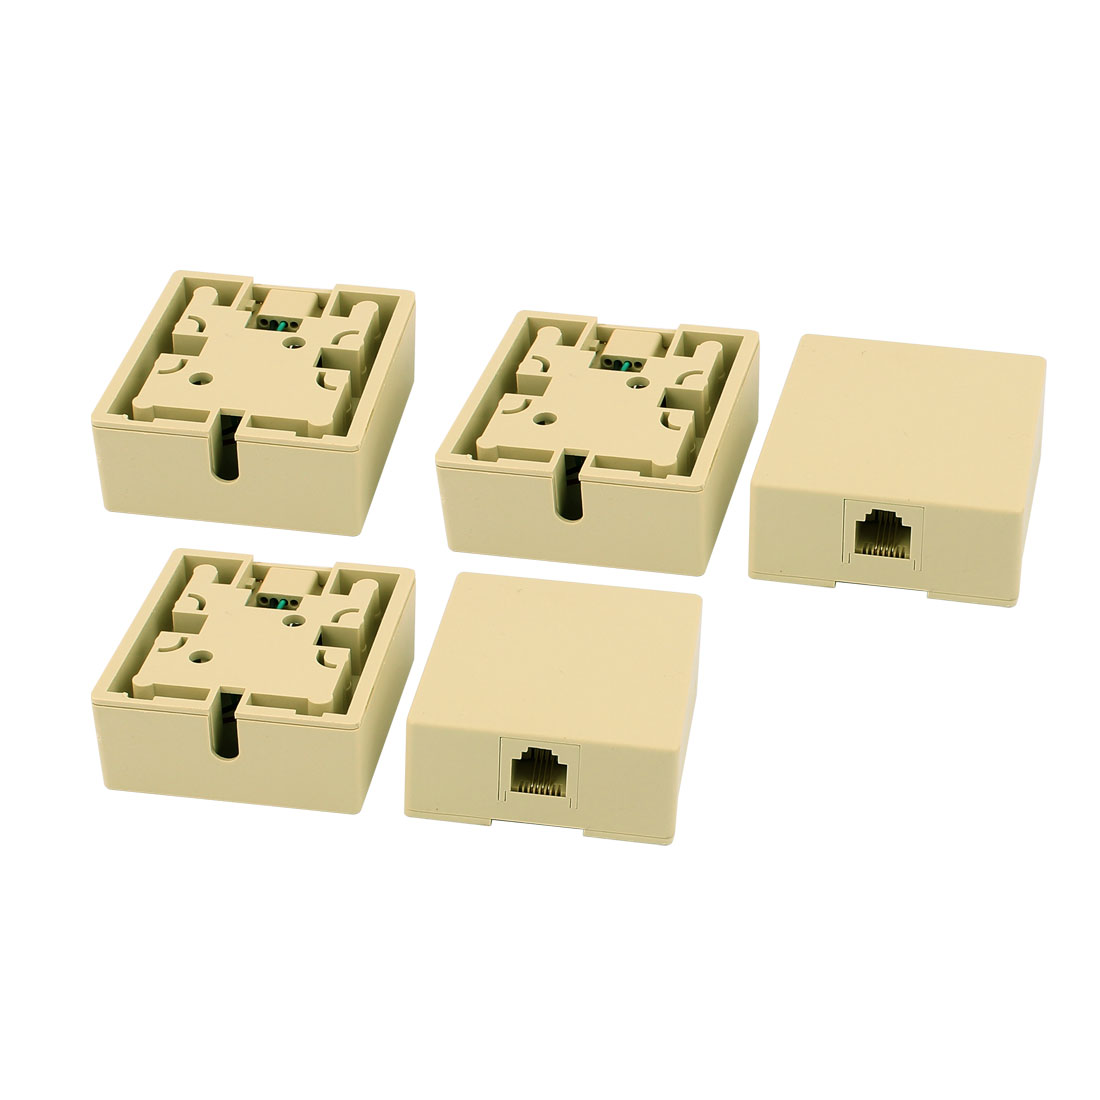 5Pcs Surface Mount RJ45 8P4C Female Phone Cable Extension Line Network Connector Adapter Jack